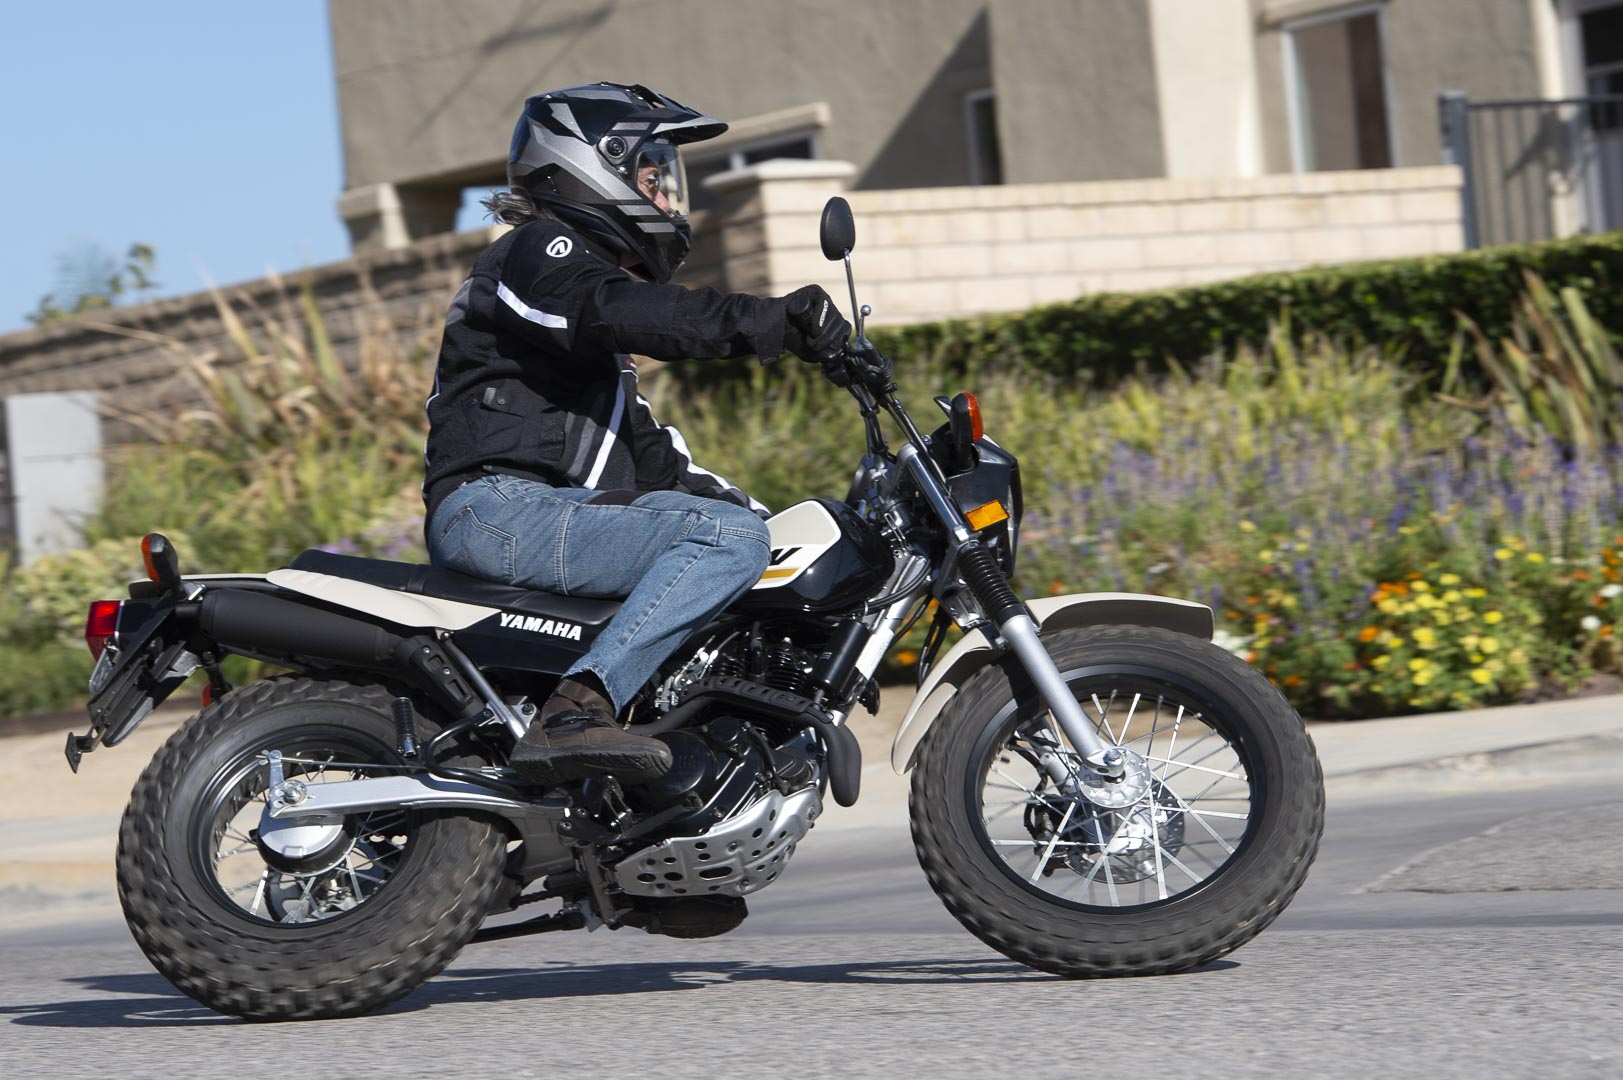 Best Dual Sport Motorcycle 2020.2020 Yamaha Tw200 Review The Forgotten Dual Sport Motorcycle